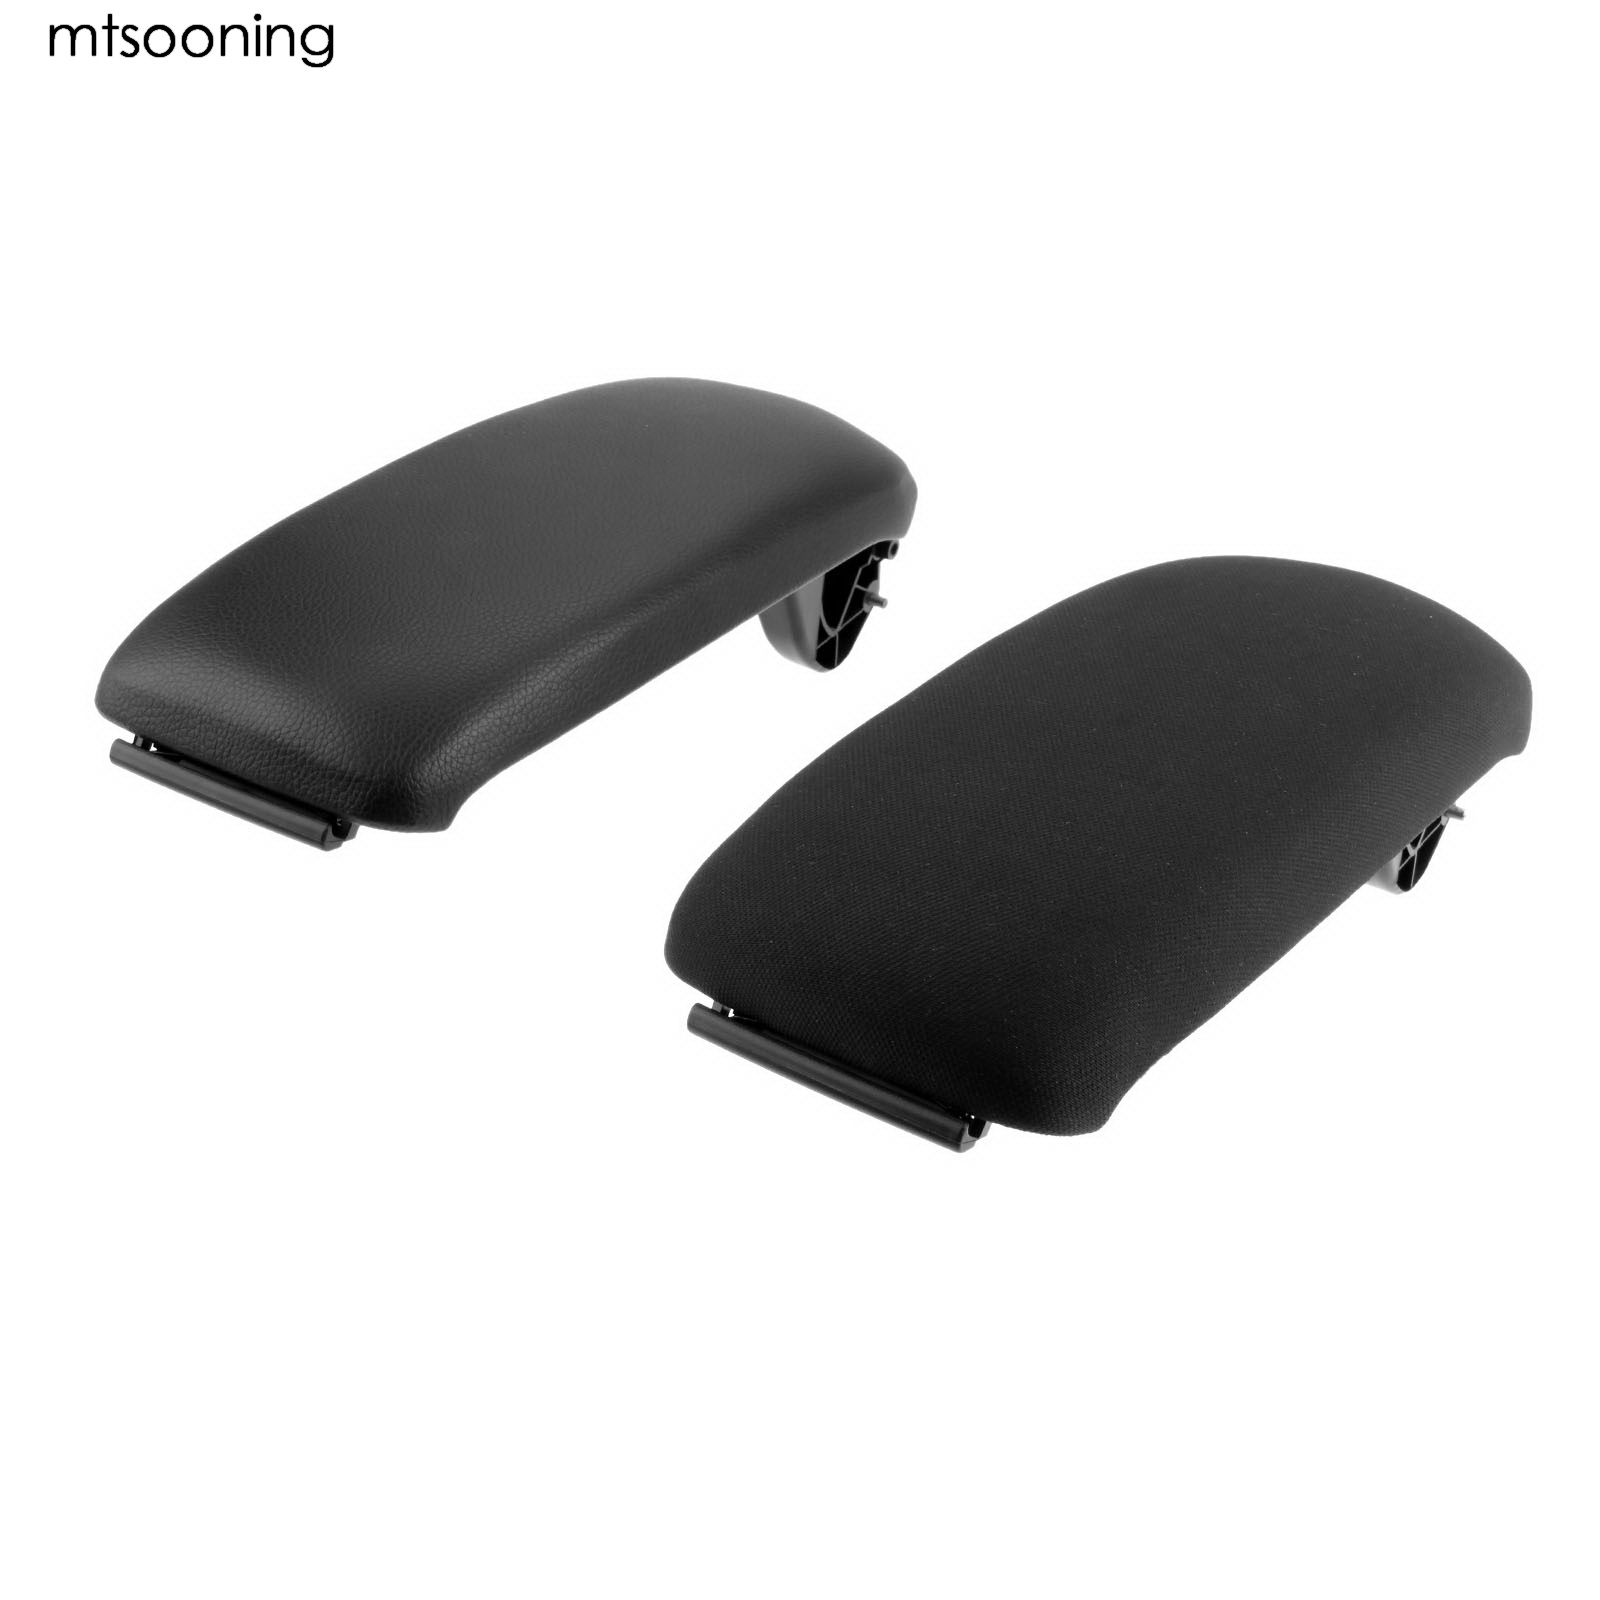 mtsooning Car Center Console Armrest Cover Lid 8P0864245P Black For AUDI A3 S3 8P 2003 2004 2005 2006 2007 2008 2009 2010-2012 leather center console armrest cover lid fit for audi a4 b6 b7 2002 2003 2004 2005 2006 2007